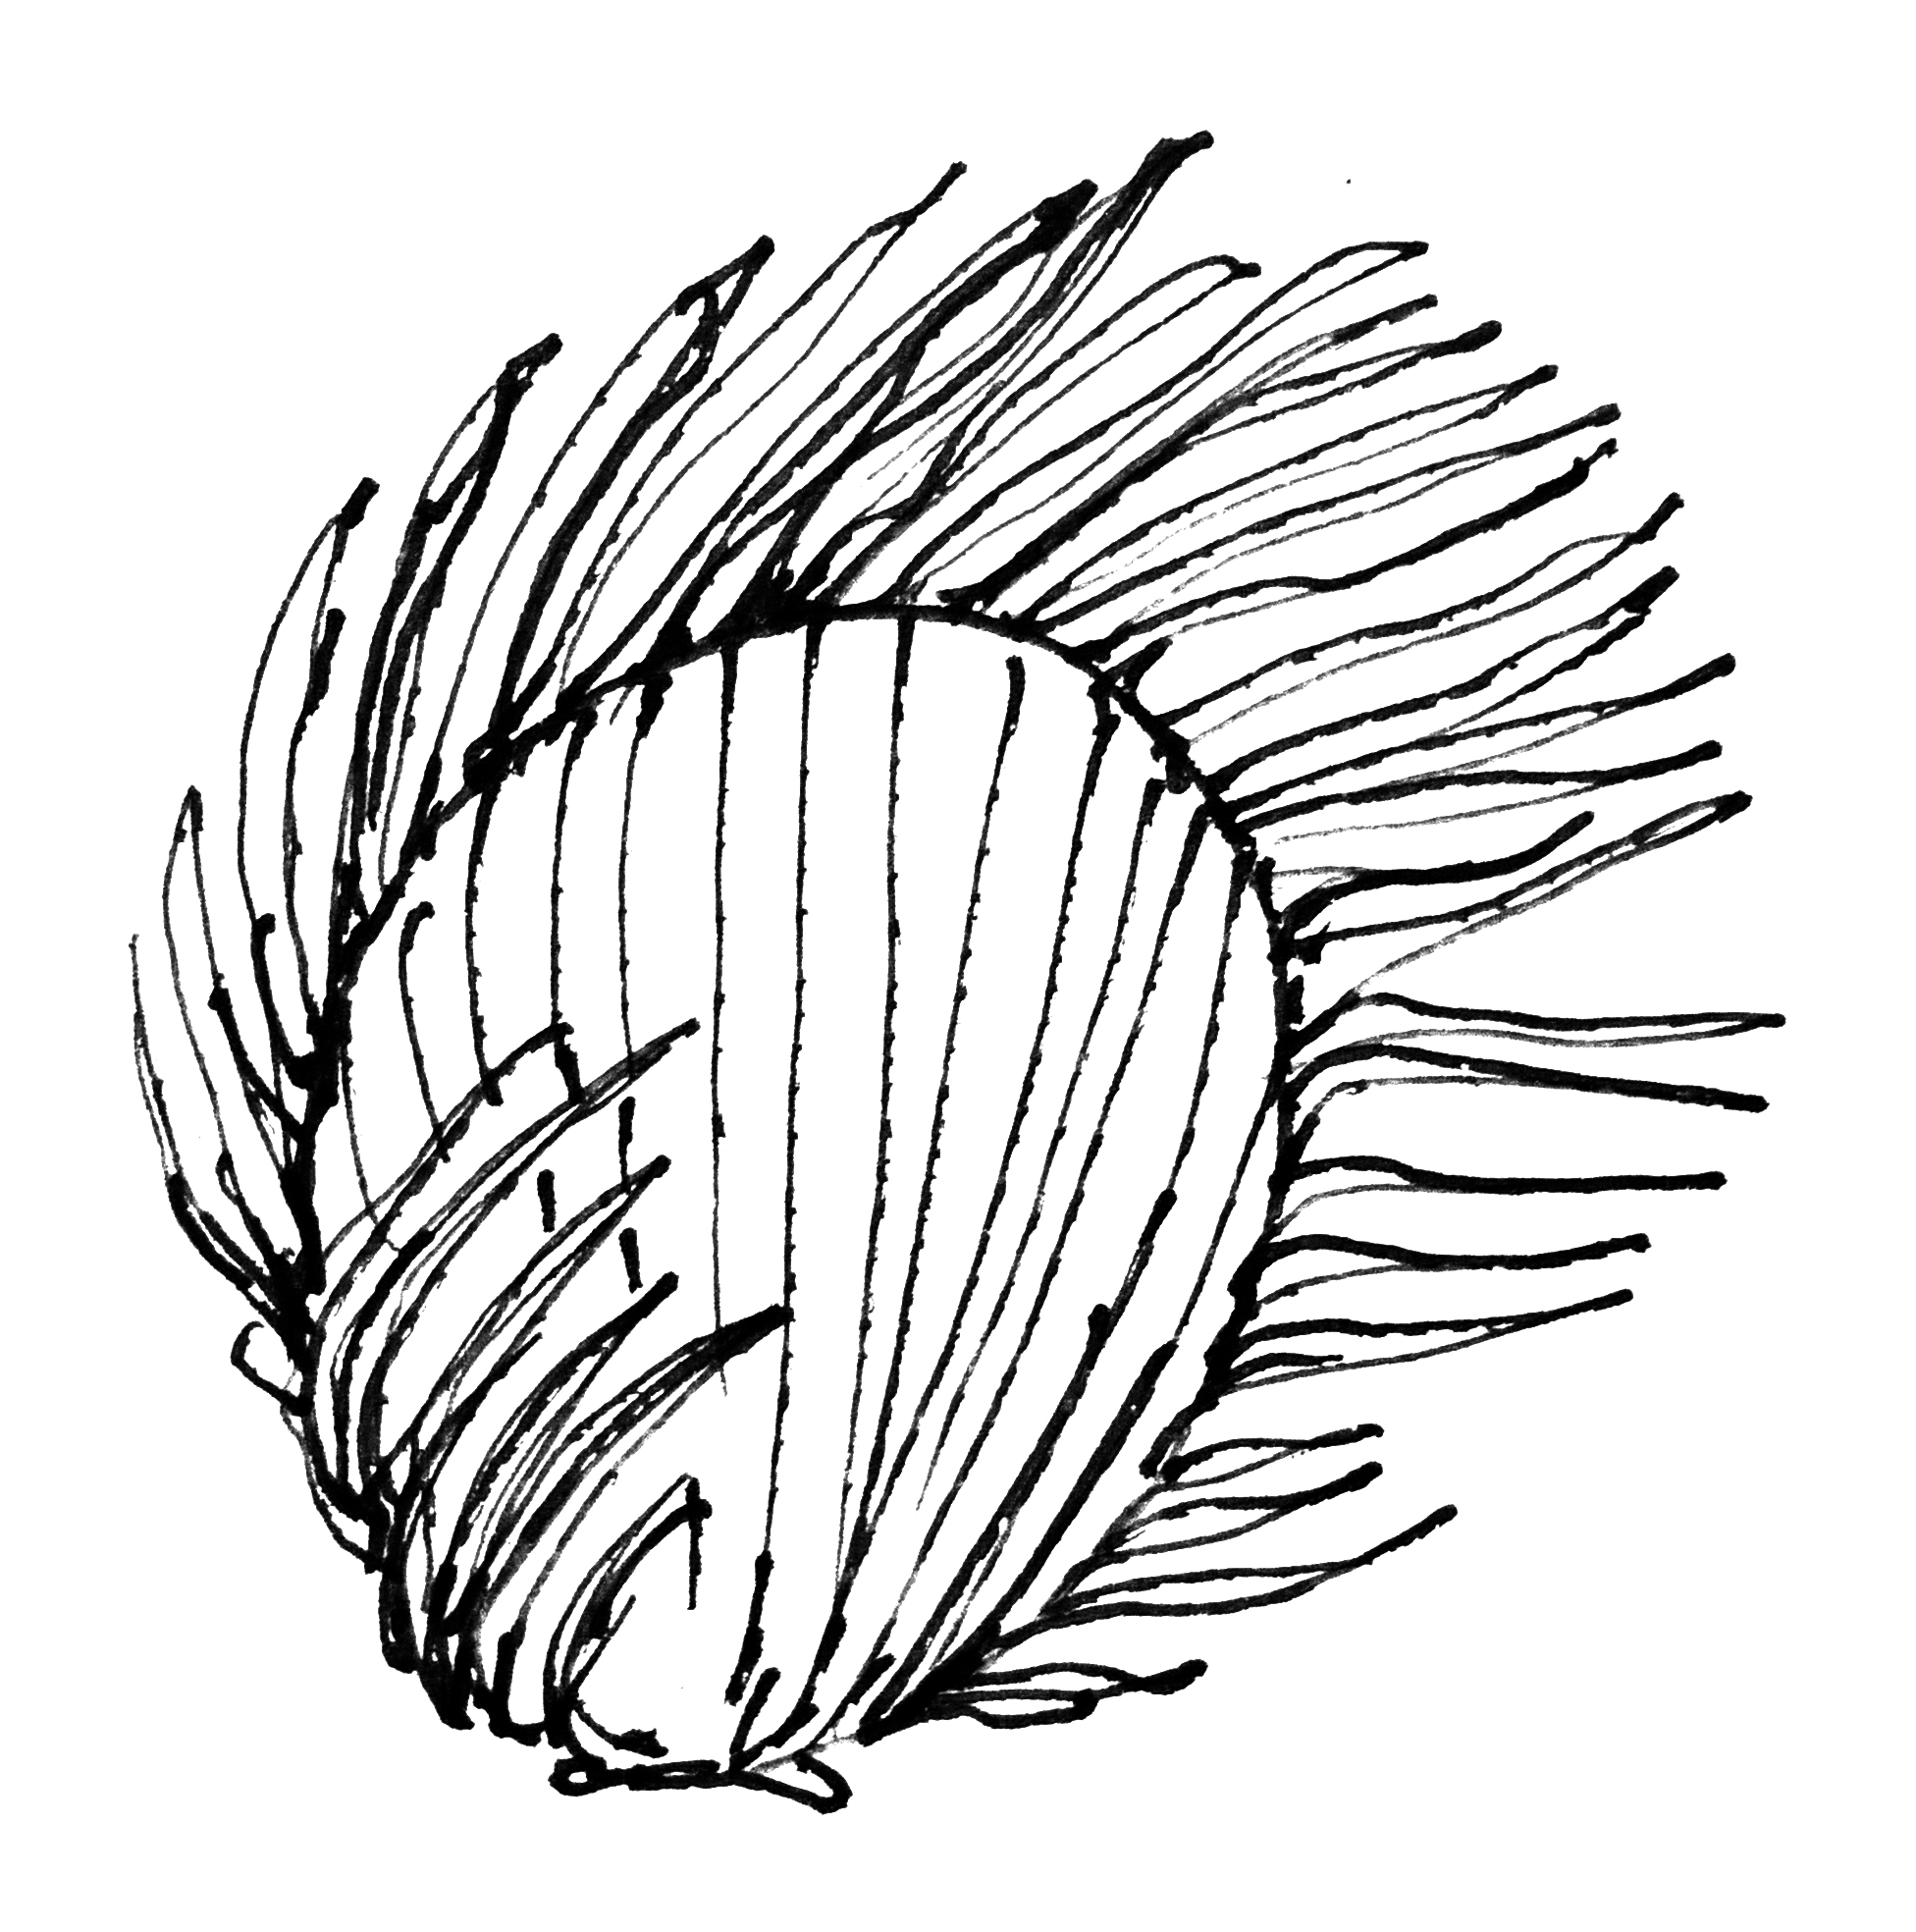 Line drawing of flameshell